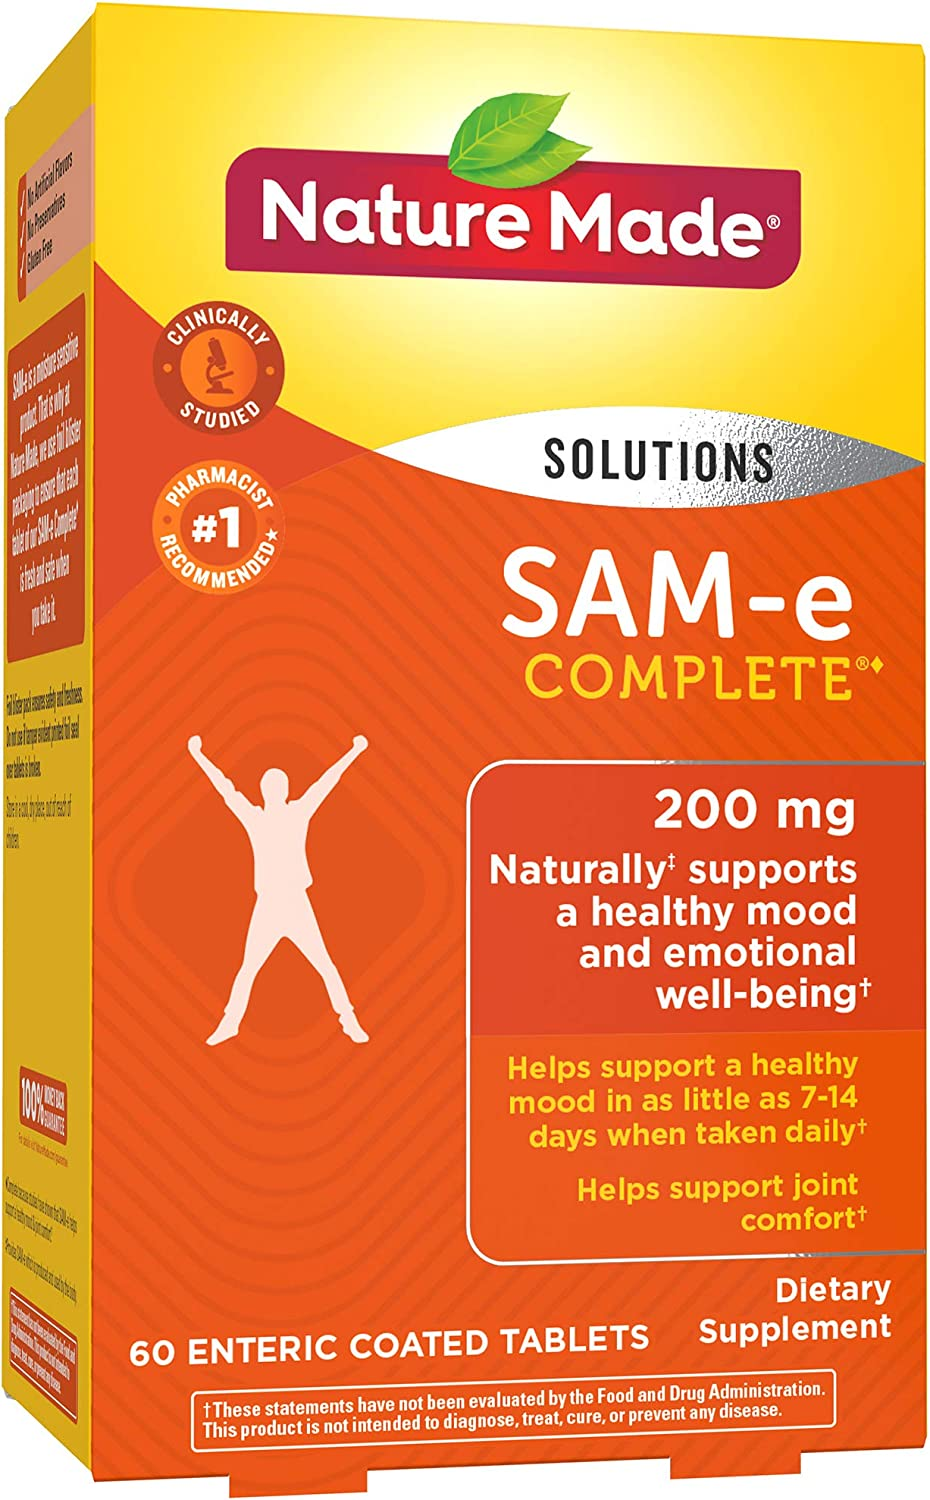 Nature Made SAM-e Complete 200 mg Tablets, 60 Count for Supporting a Healthy Mood Packaging May Vary